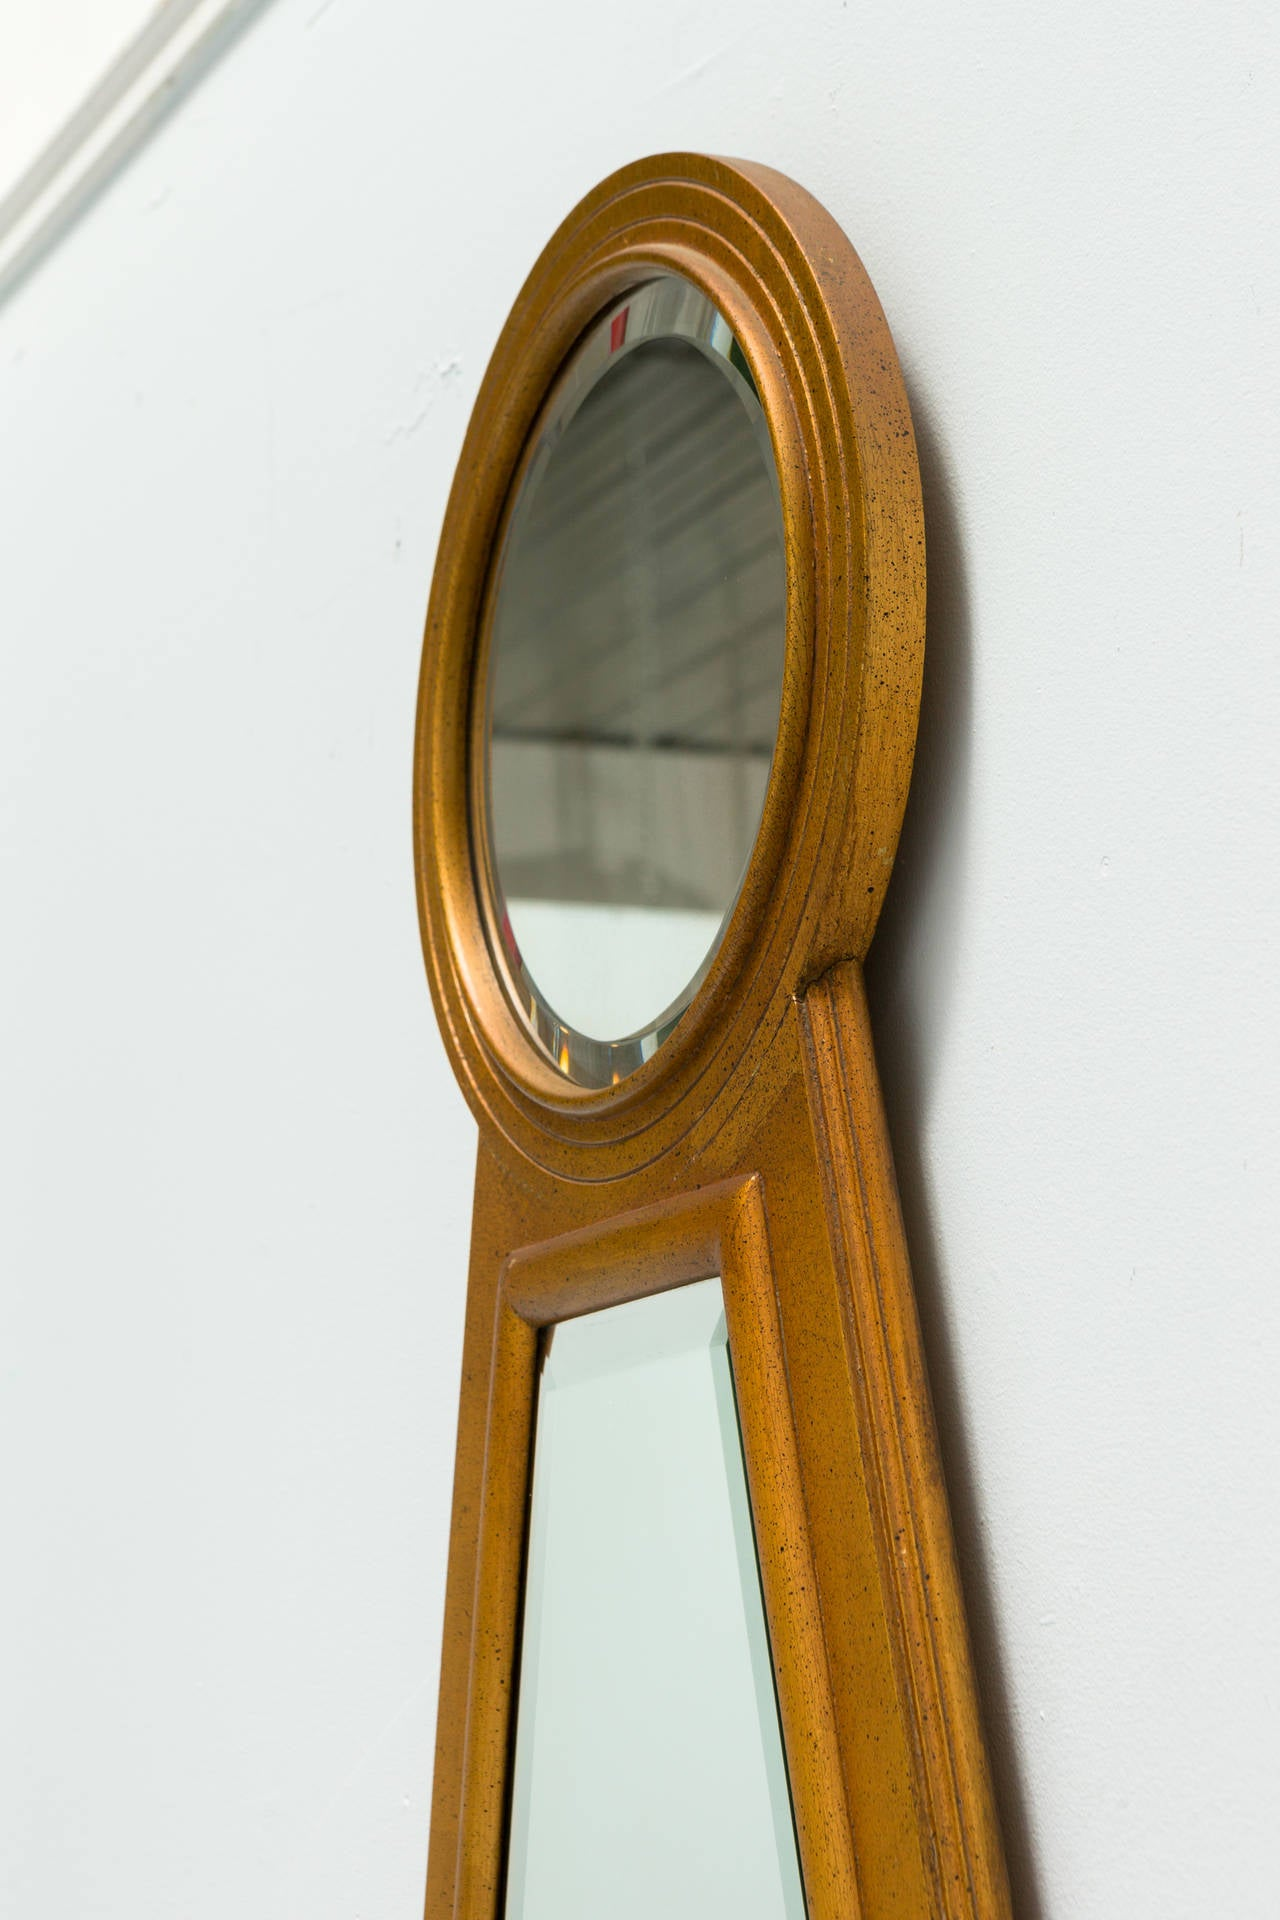 Keyhole gilt wood beveled mirror at 1stdibs for What is a gilt mirror